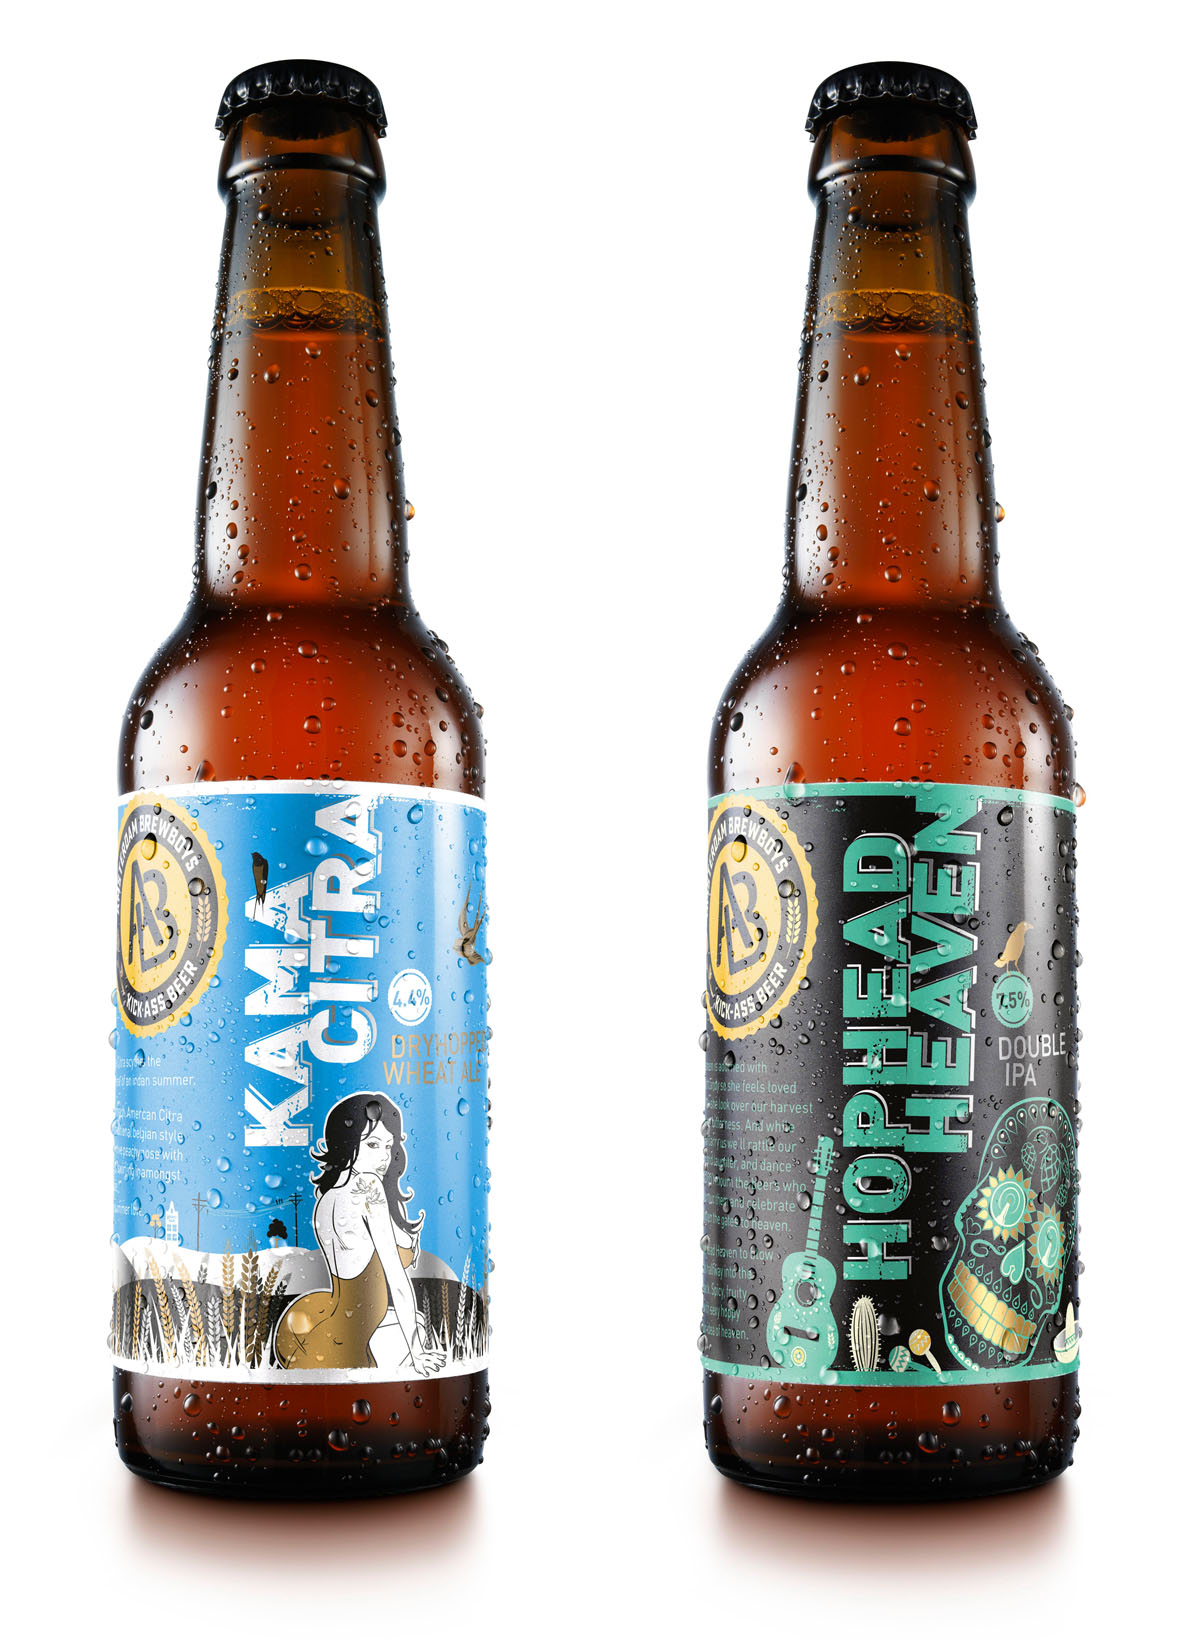 Packshots photography of two bottles of Brew Boys beer made by Studio-m Photography Amsterdam